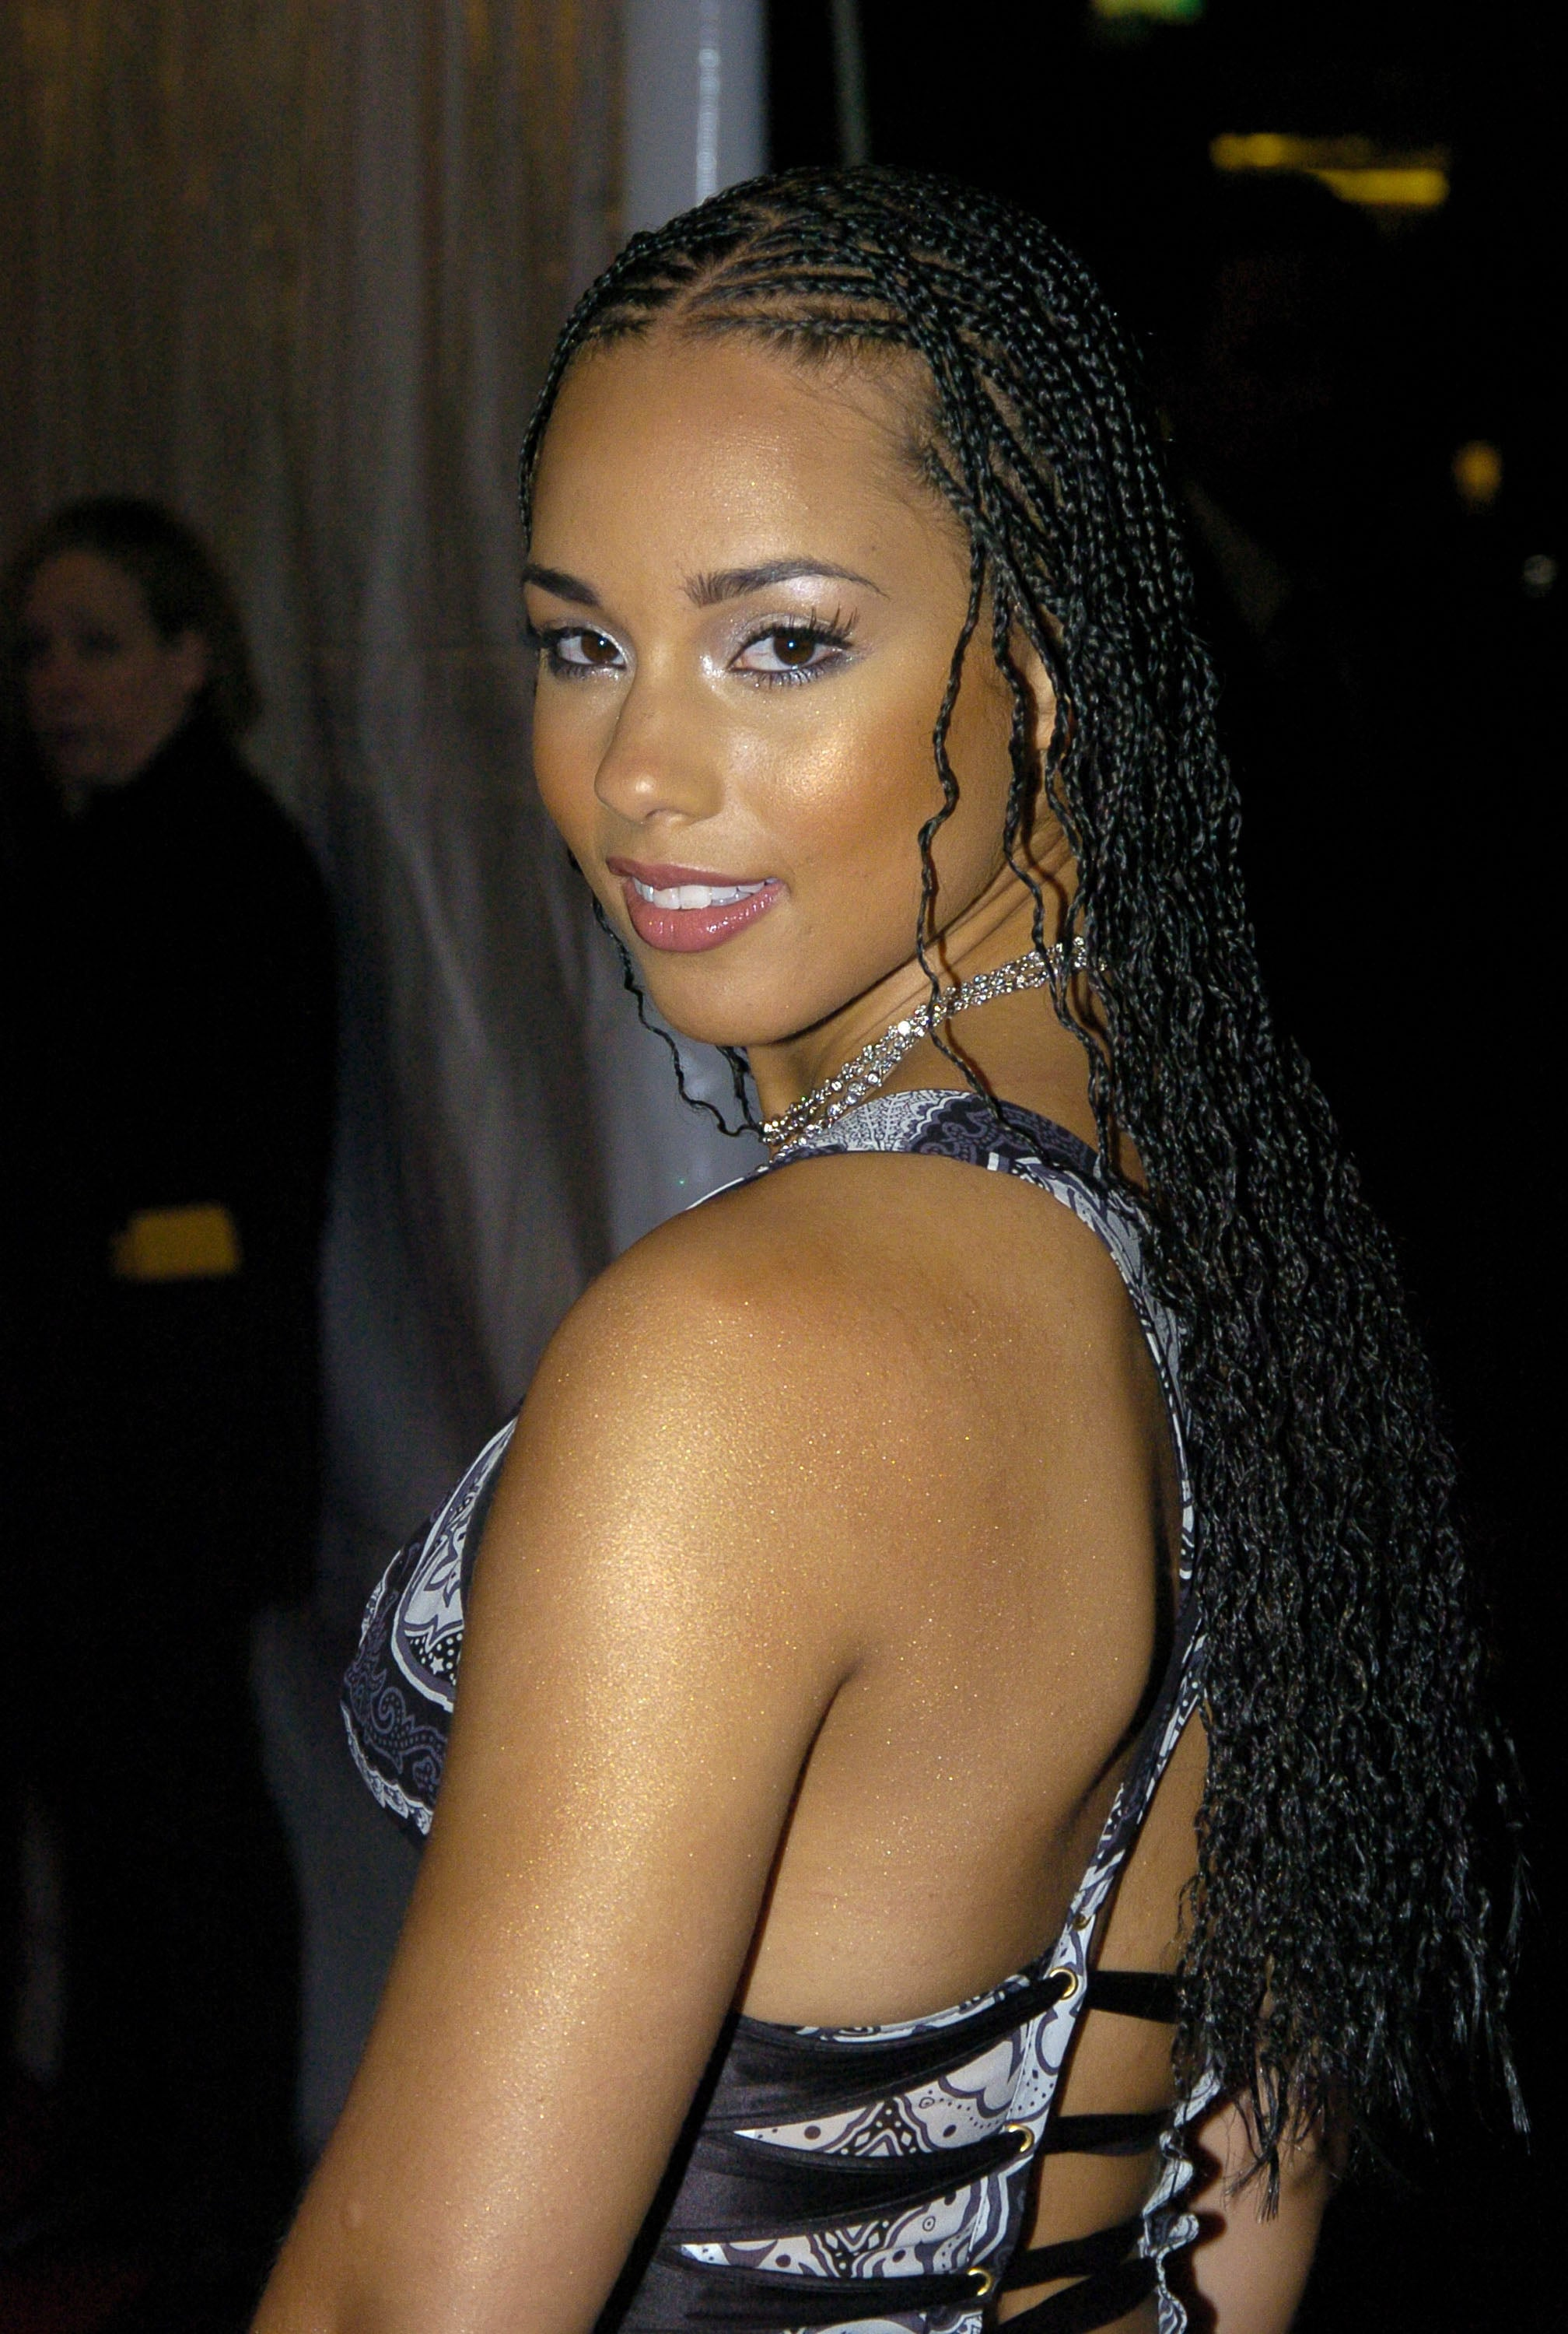 Alicia Keys during The 19th Annual Rock and Roll Hall of Fame Induction Ceremony - Red Carpet at Waldorf Astoria in New York City, New York, United States. (Photo by Jeff Kravitz/FilmMagic, Inc)